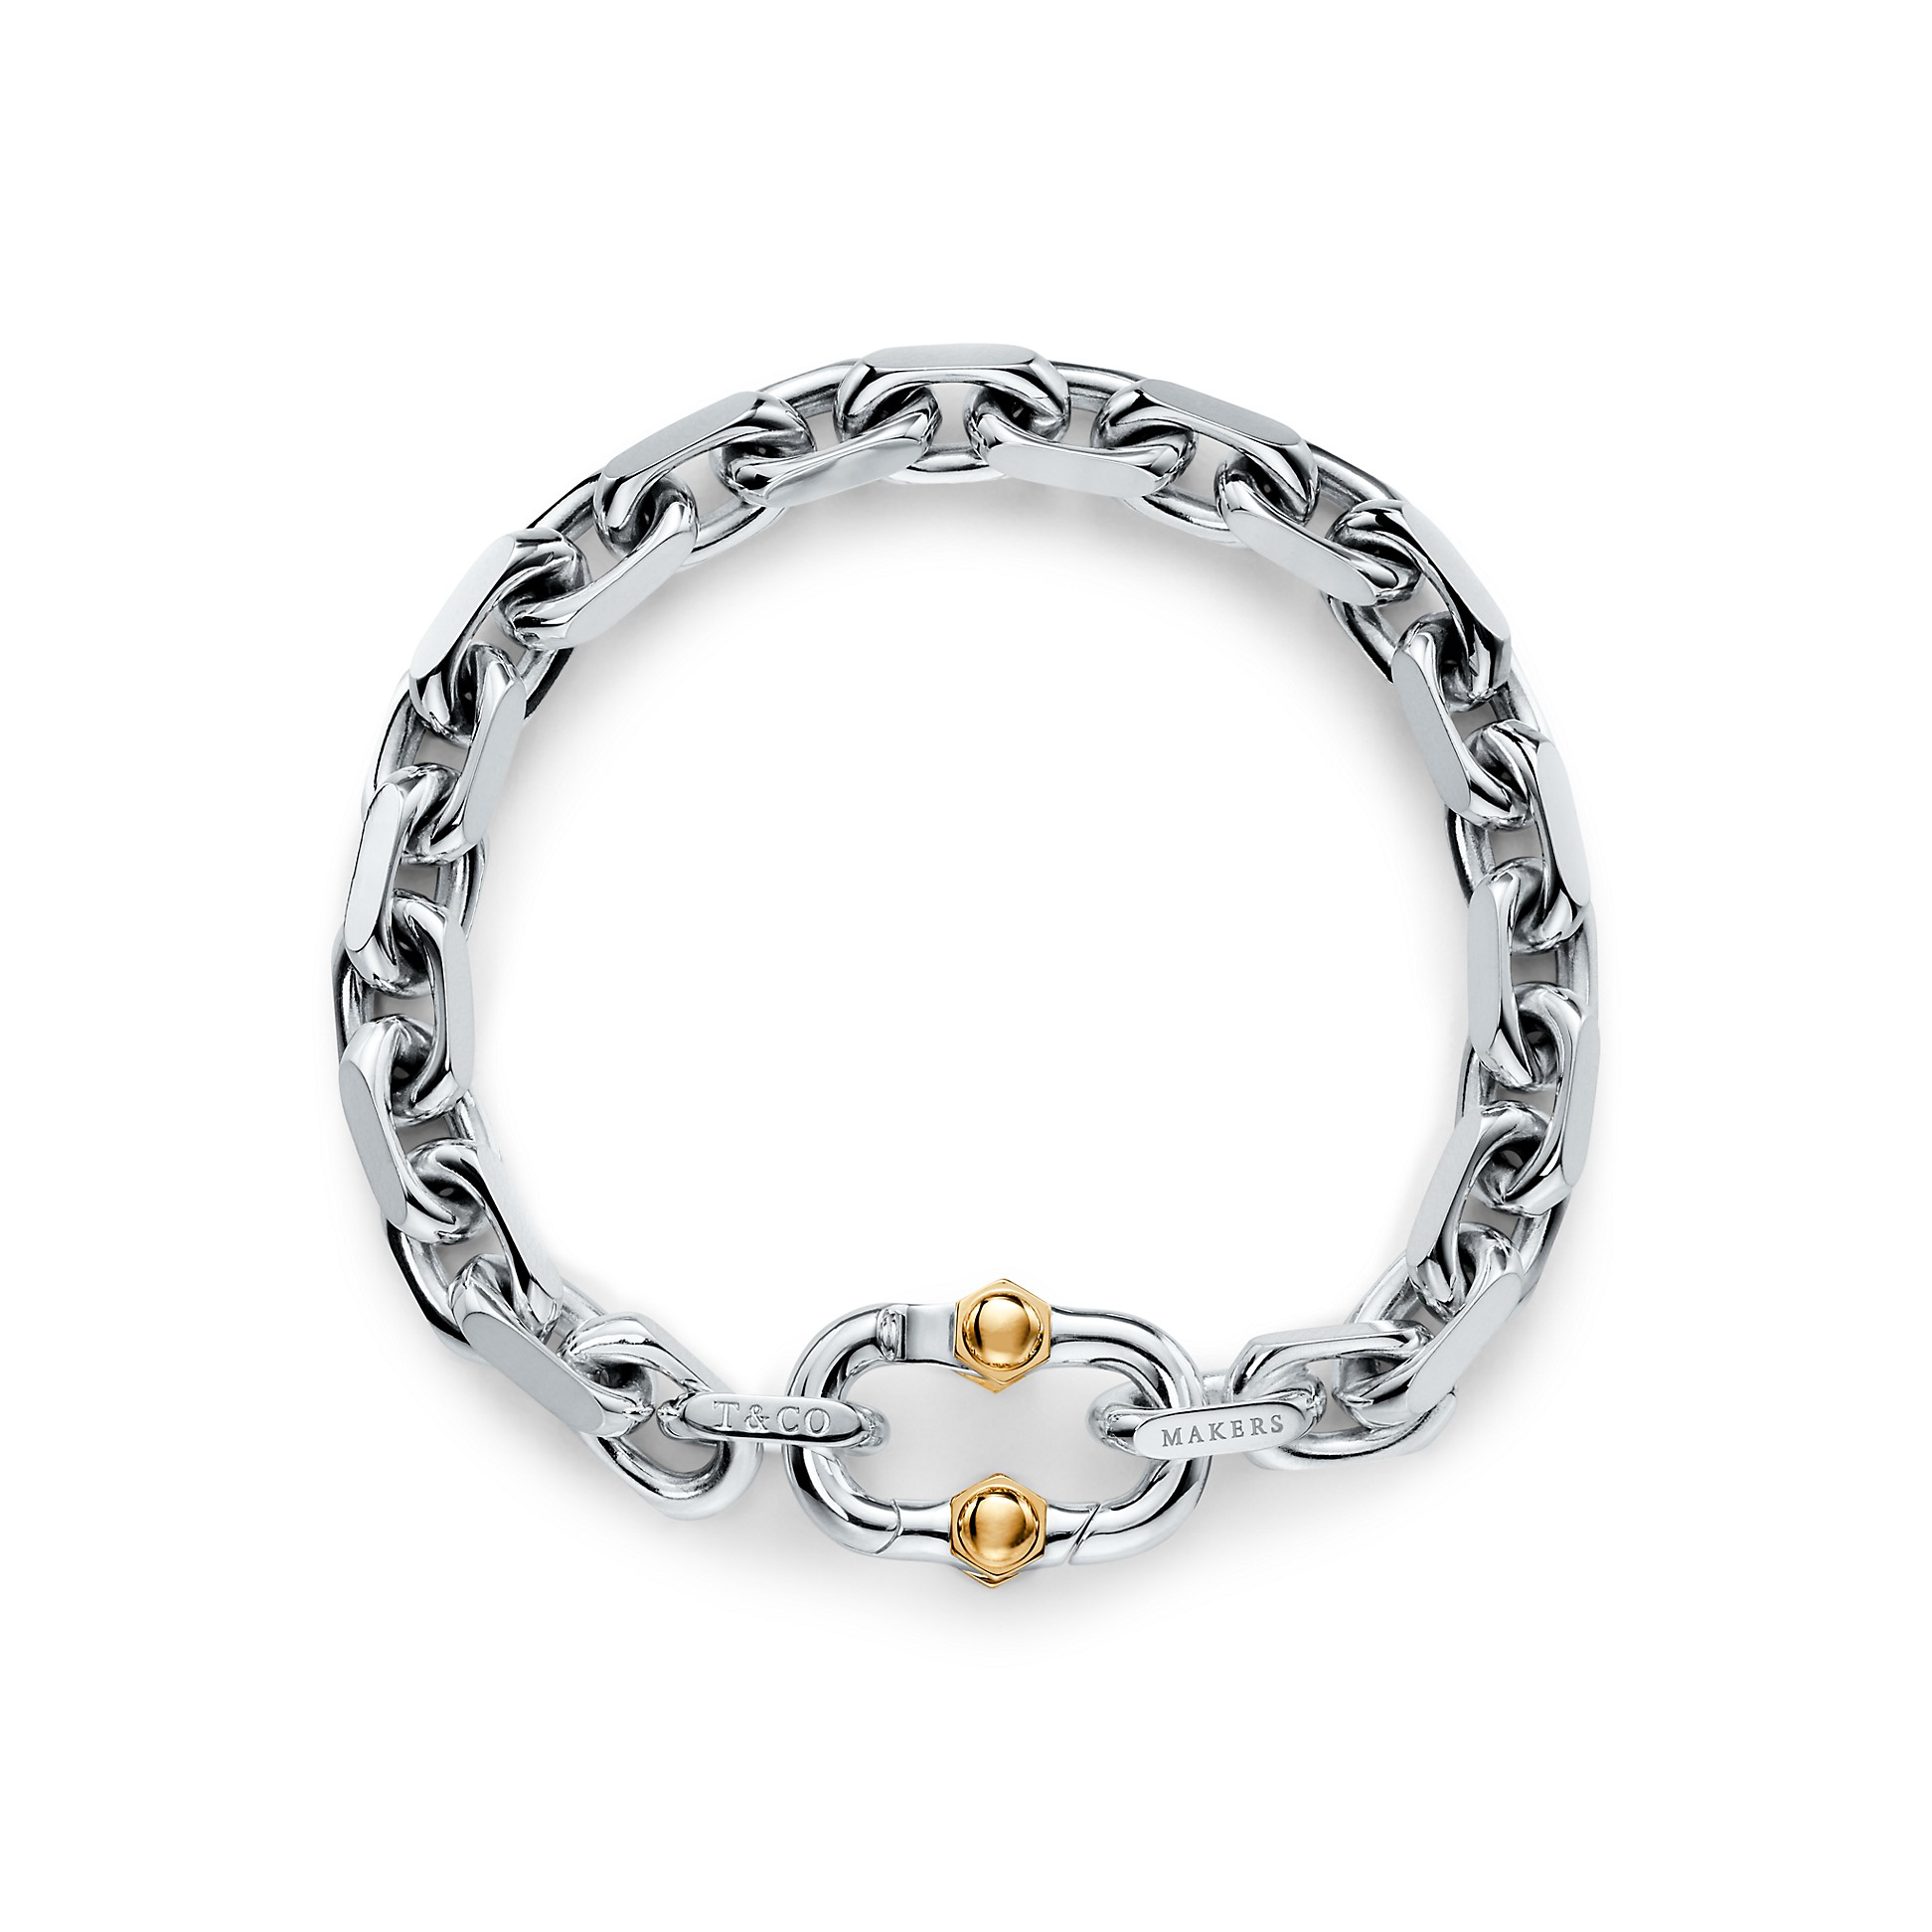 Tiffany 1837®        Makers Wide Chain Bracelet In Sterling Silver And 18k Gold by Tiffany 1837®